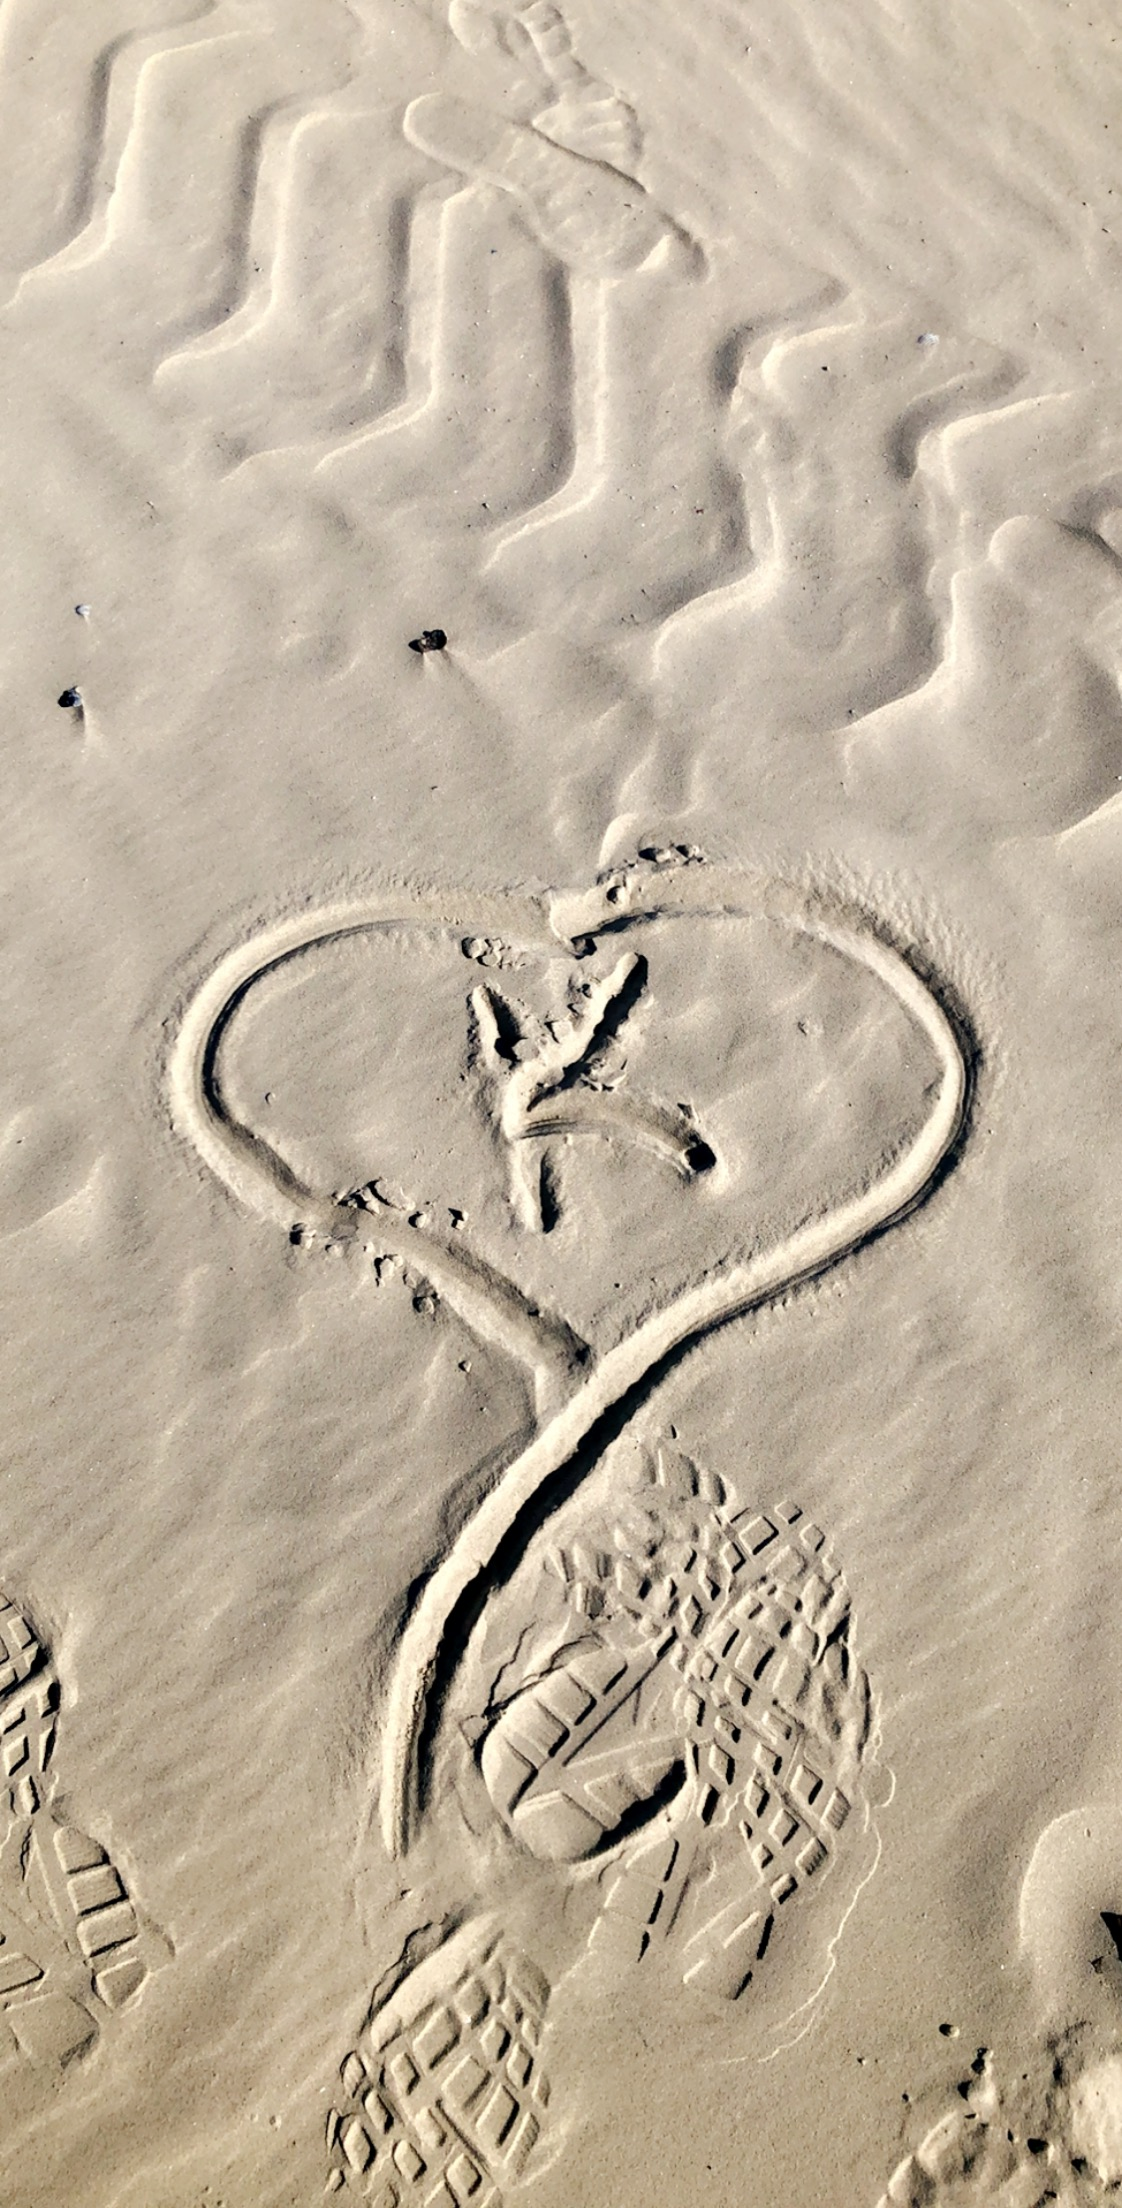 This picture is one that I took at the beach of the sand, while on lunch break. If you look closely you can see my sneakers foot print. The K that I traced in the sand with a stick stands for Krystal-my name.